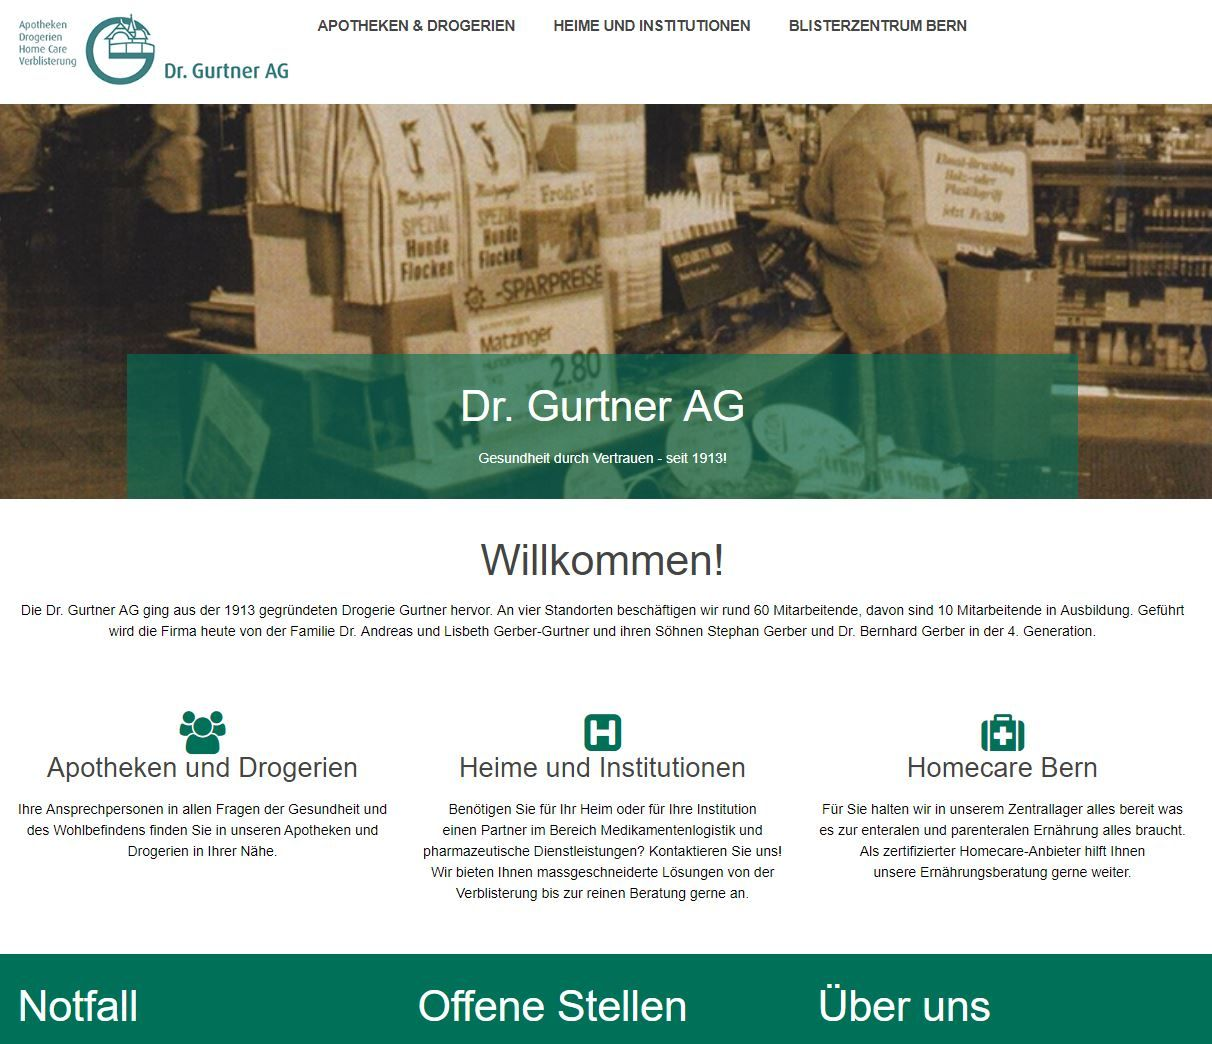 Website Dr. Gurtner